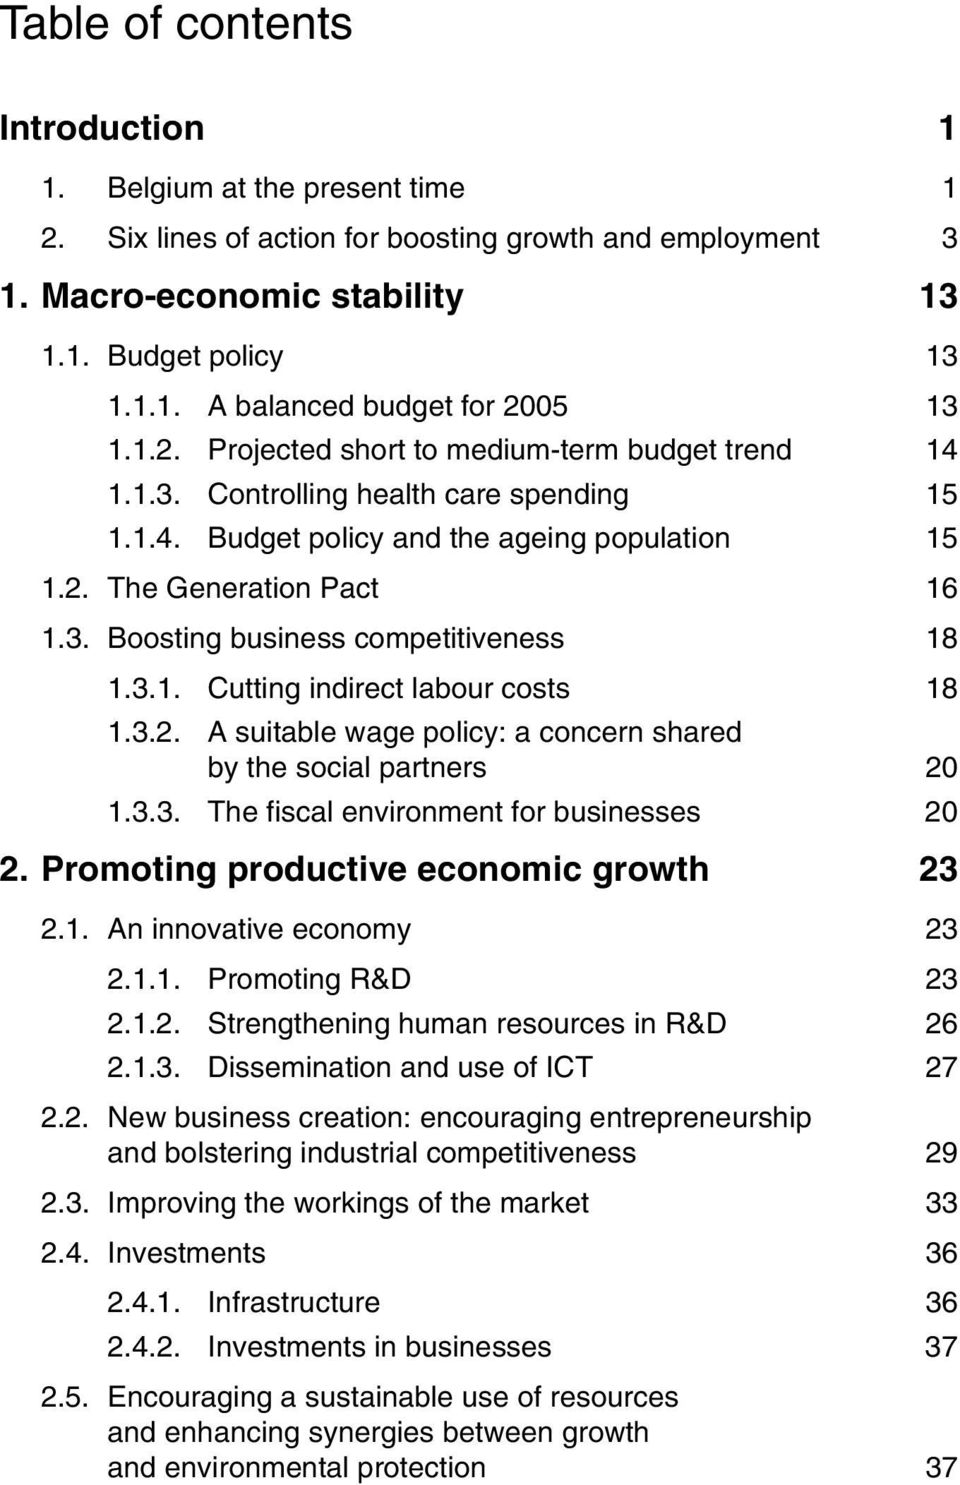 3.1. Cutting indirect labour costs 18 1.3.2. A suitable wage policy: a concern shared by the social partners 20 1.3.3. The fiscal environment for businesses 20 2.